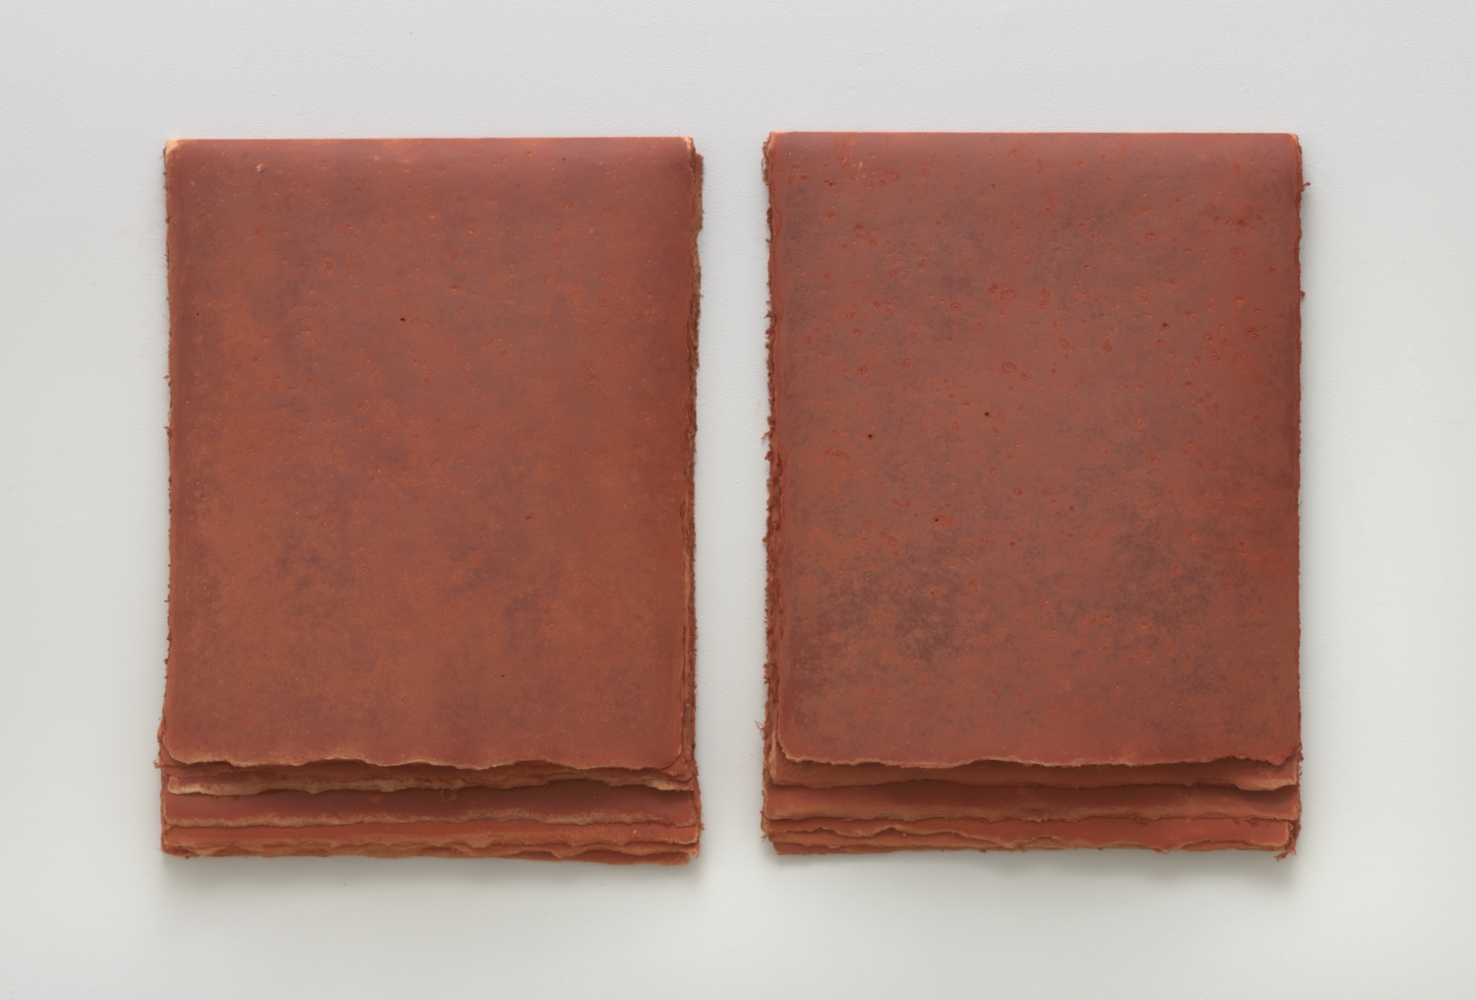 Strata Series: Durango, 1979-80  Earth from site on muslin mounted rag paper Two parts, 24 1/2 x 18 inches, each. 24 1/2 x 36 inches, overall. 8 layers, each part